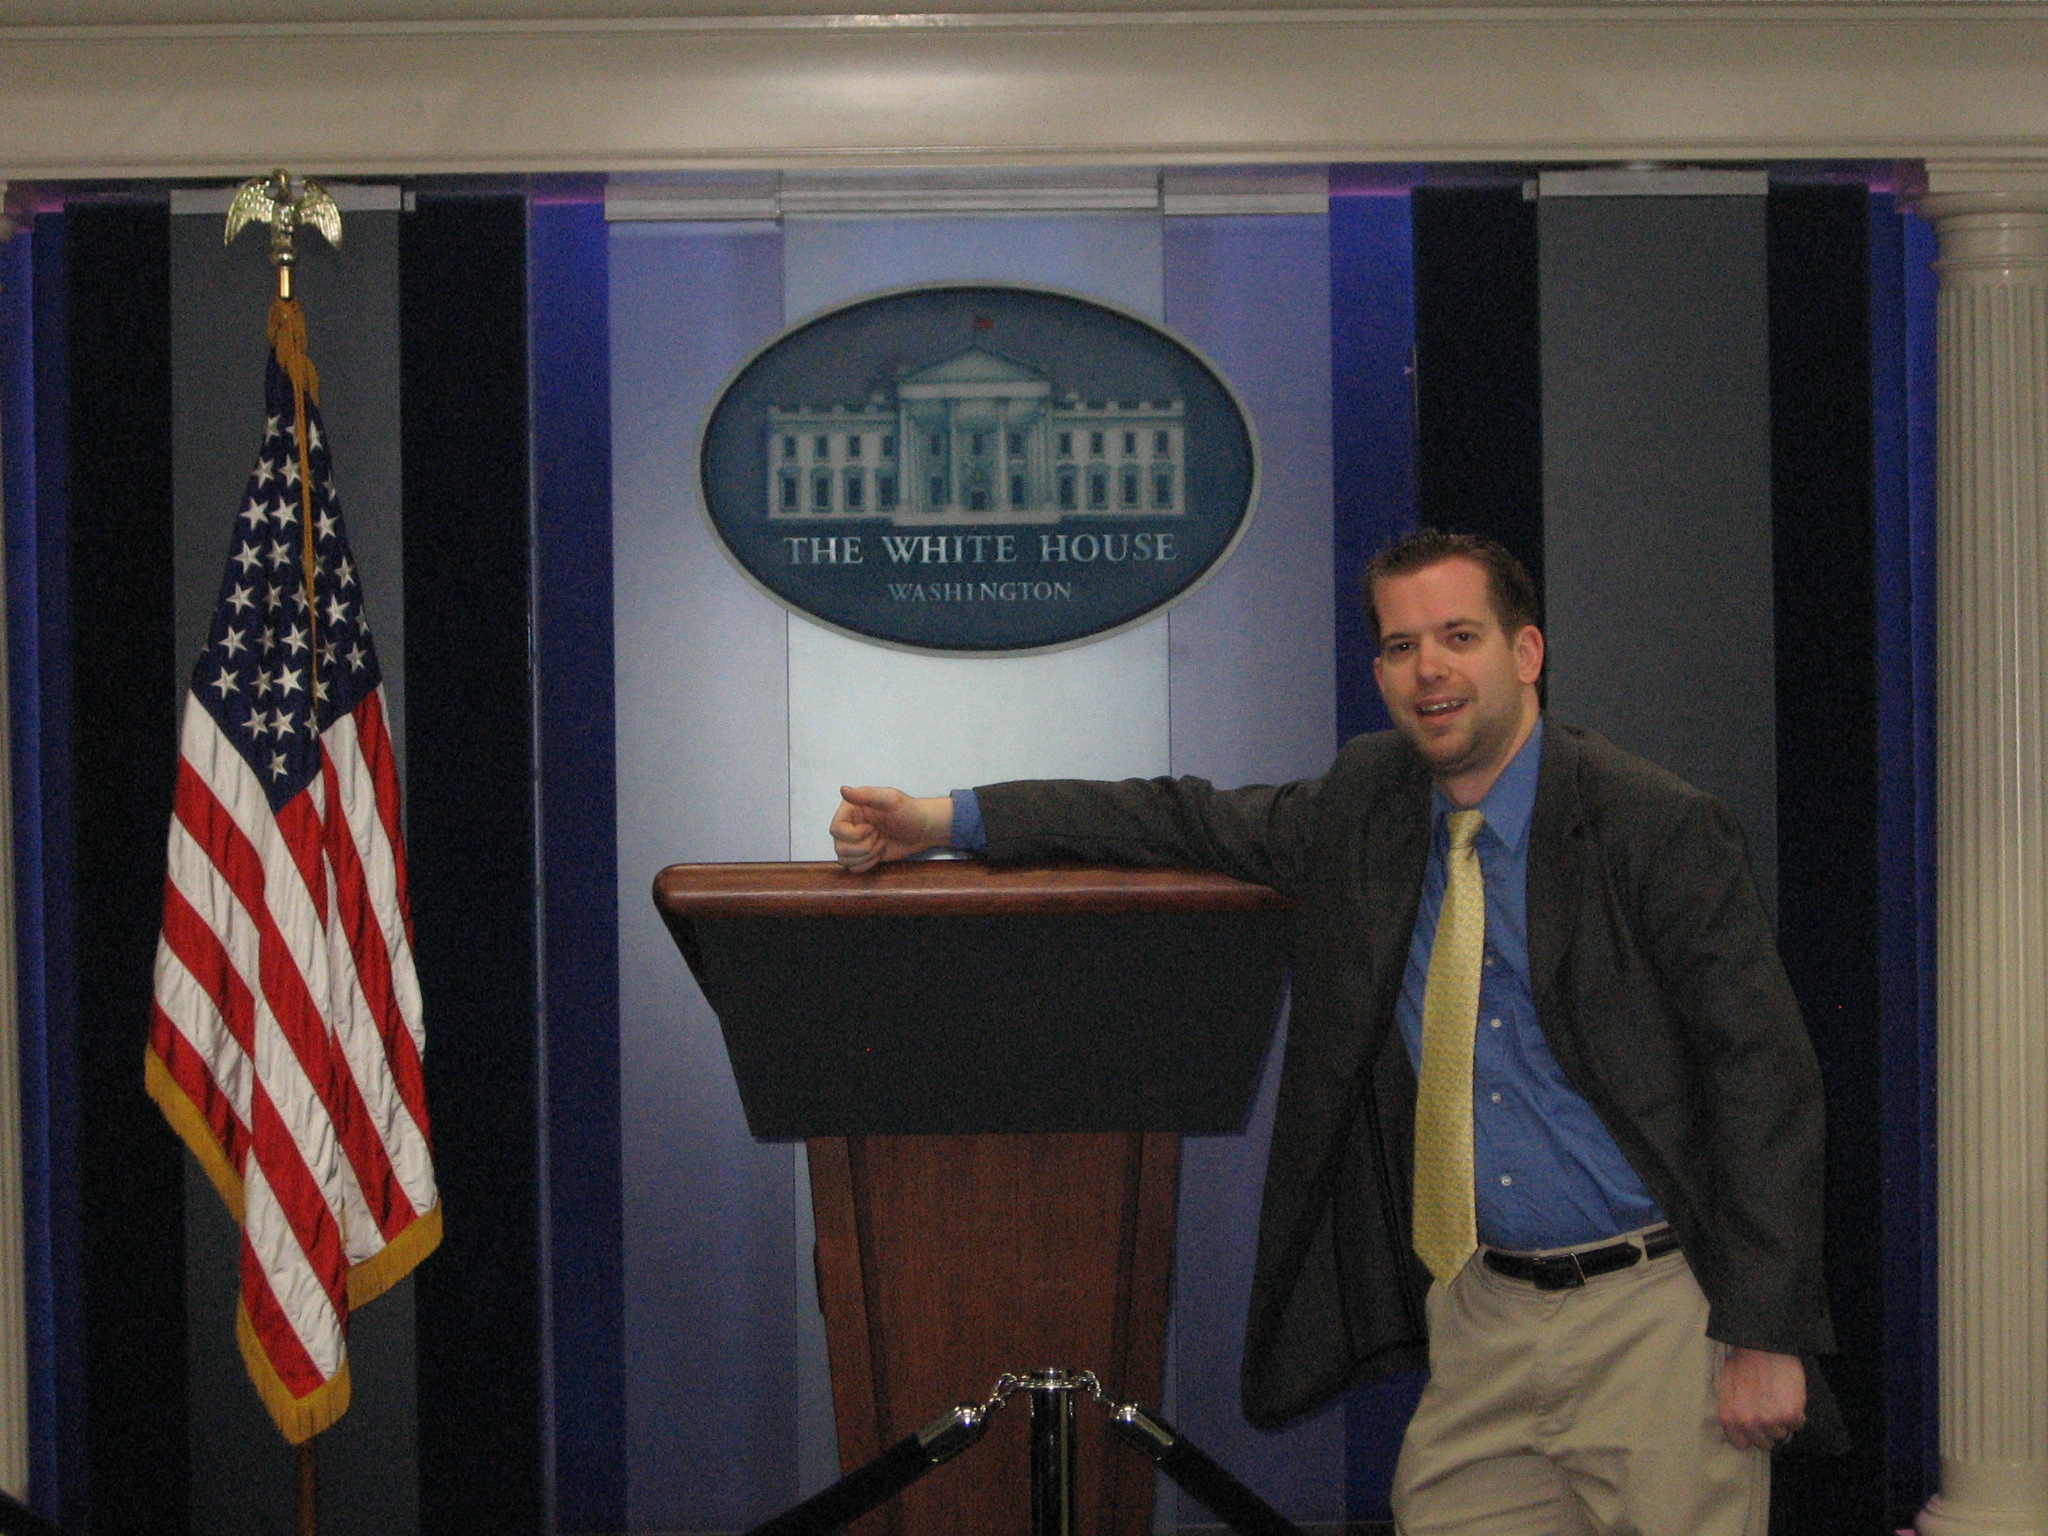 My visit to the White House.